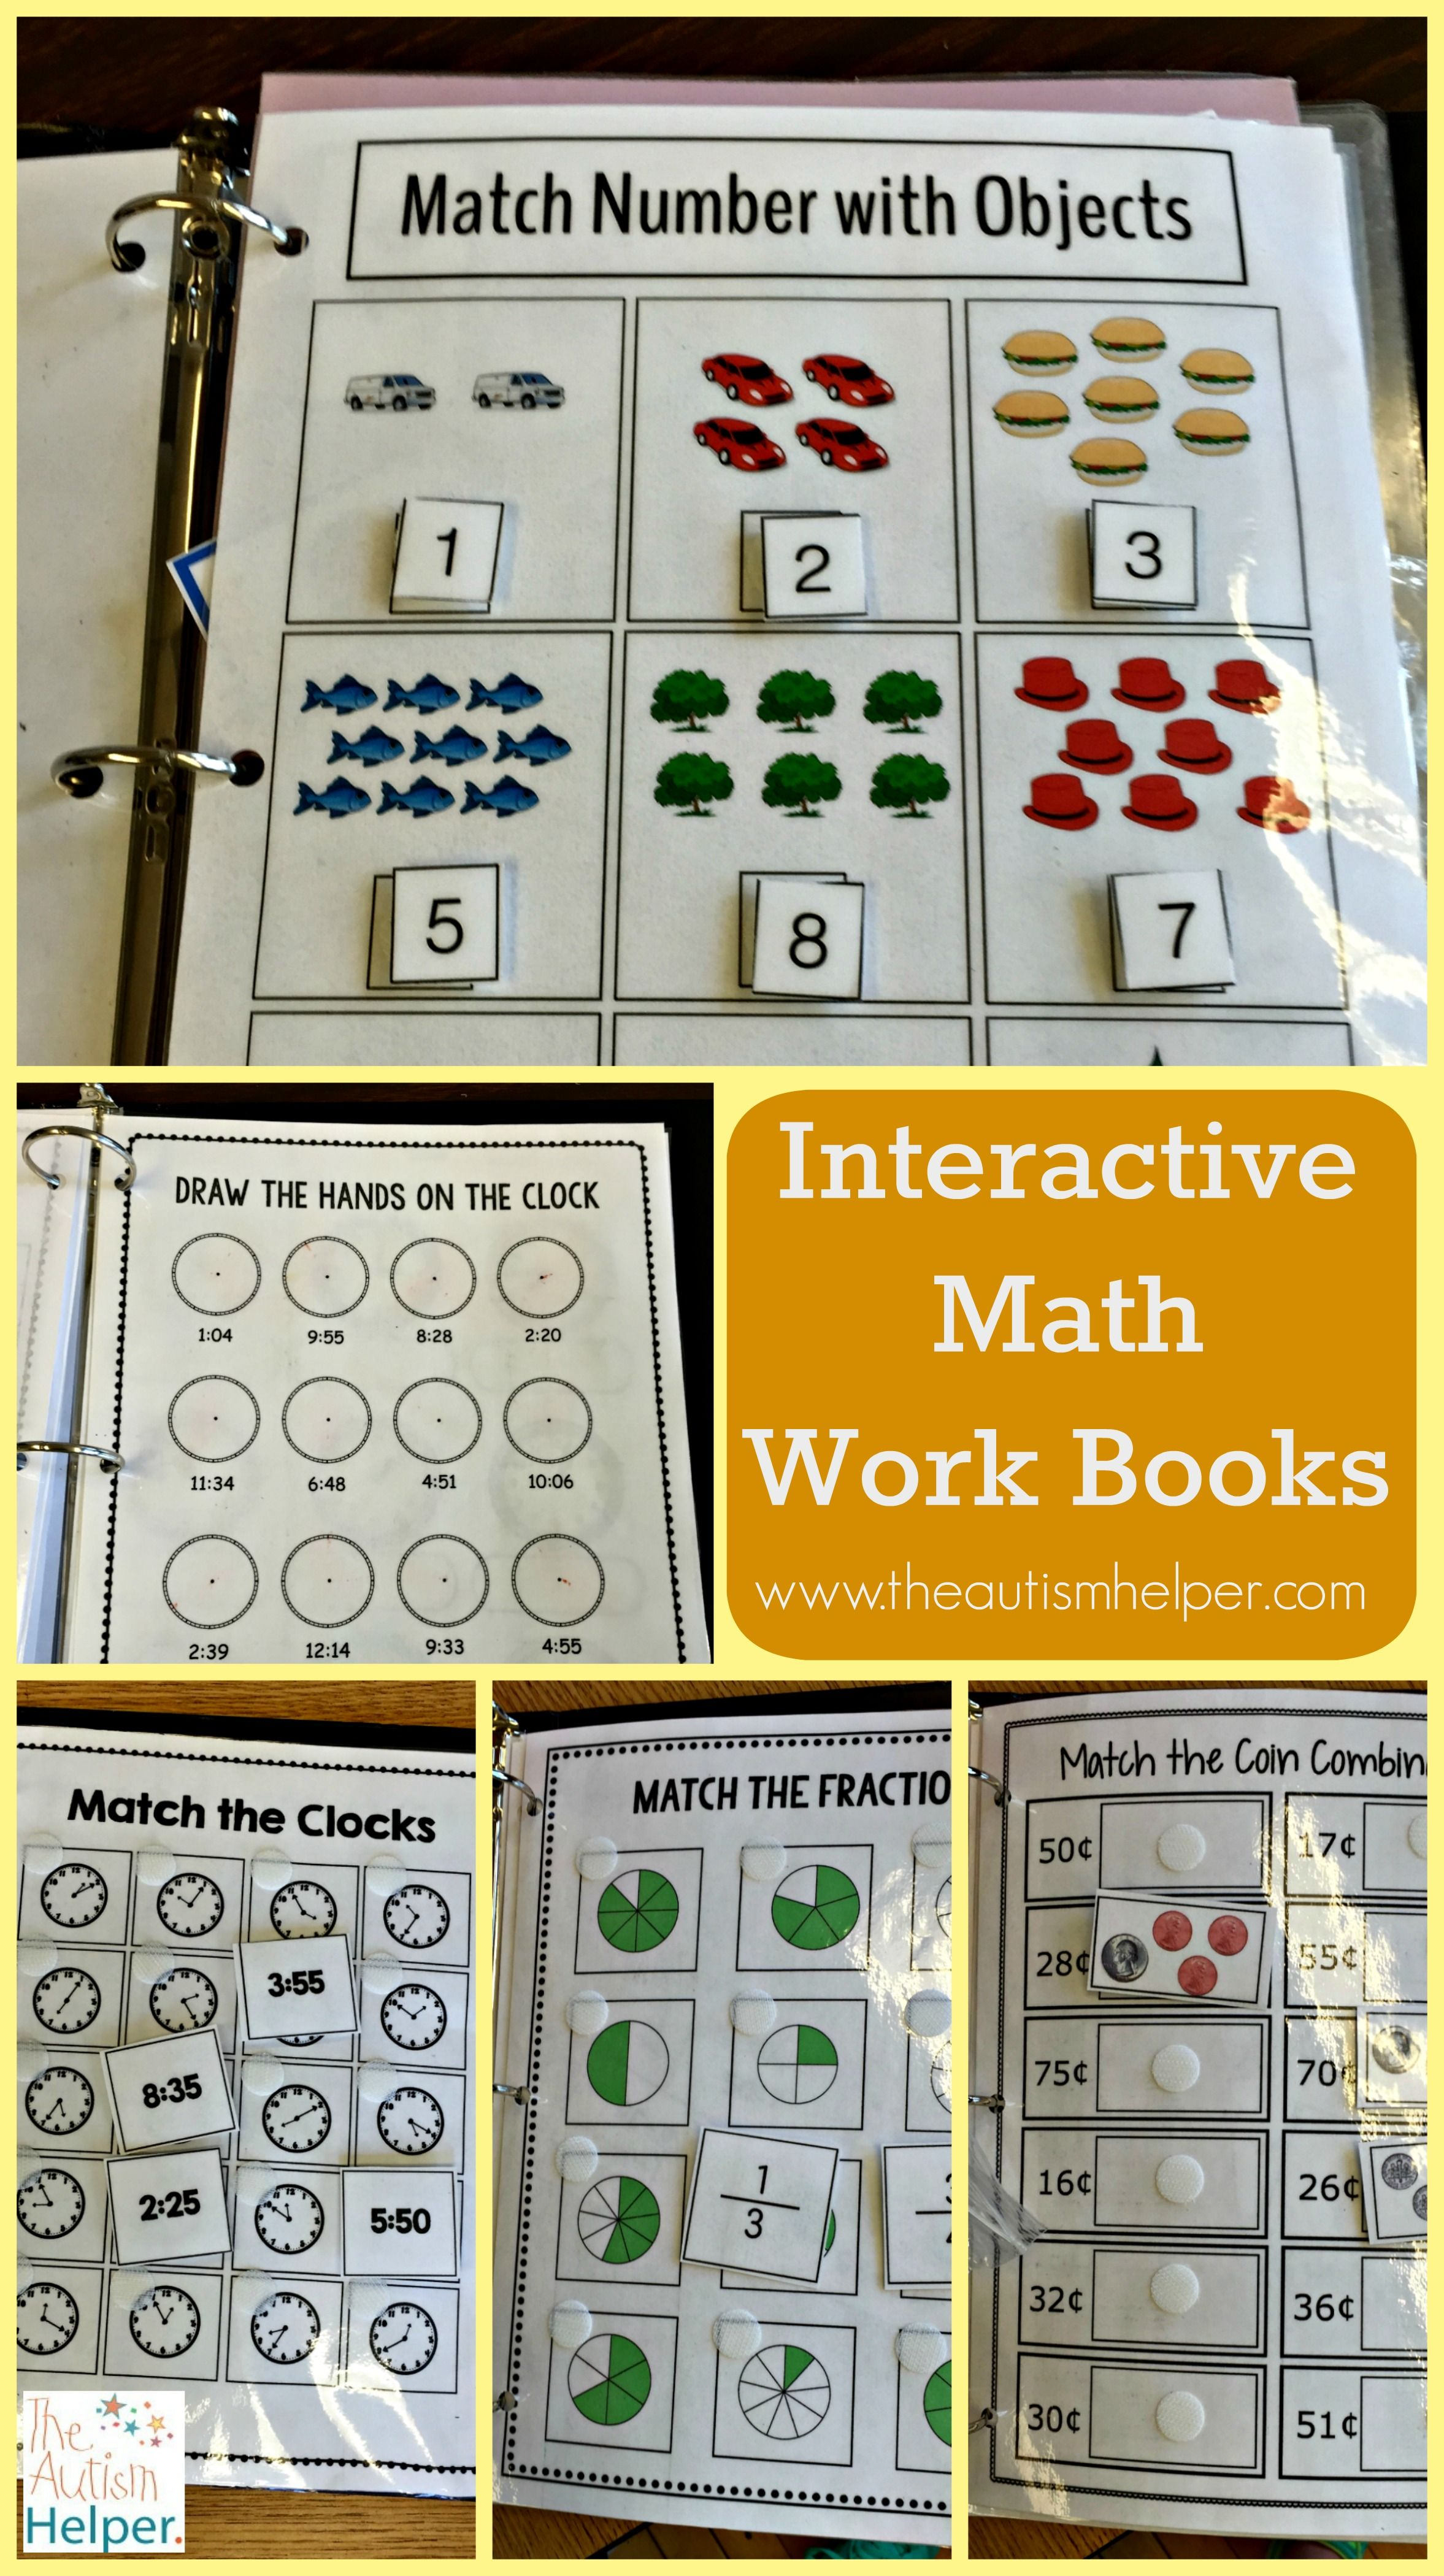 Interactive Math Work Books